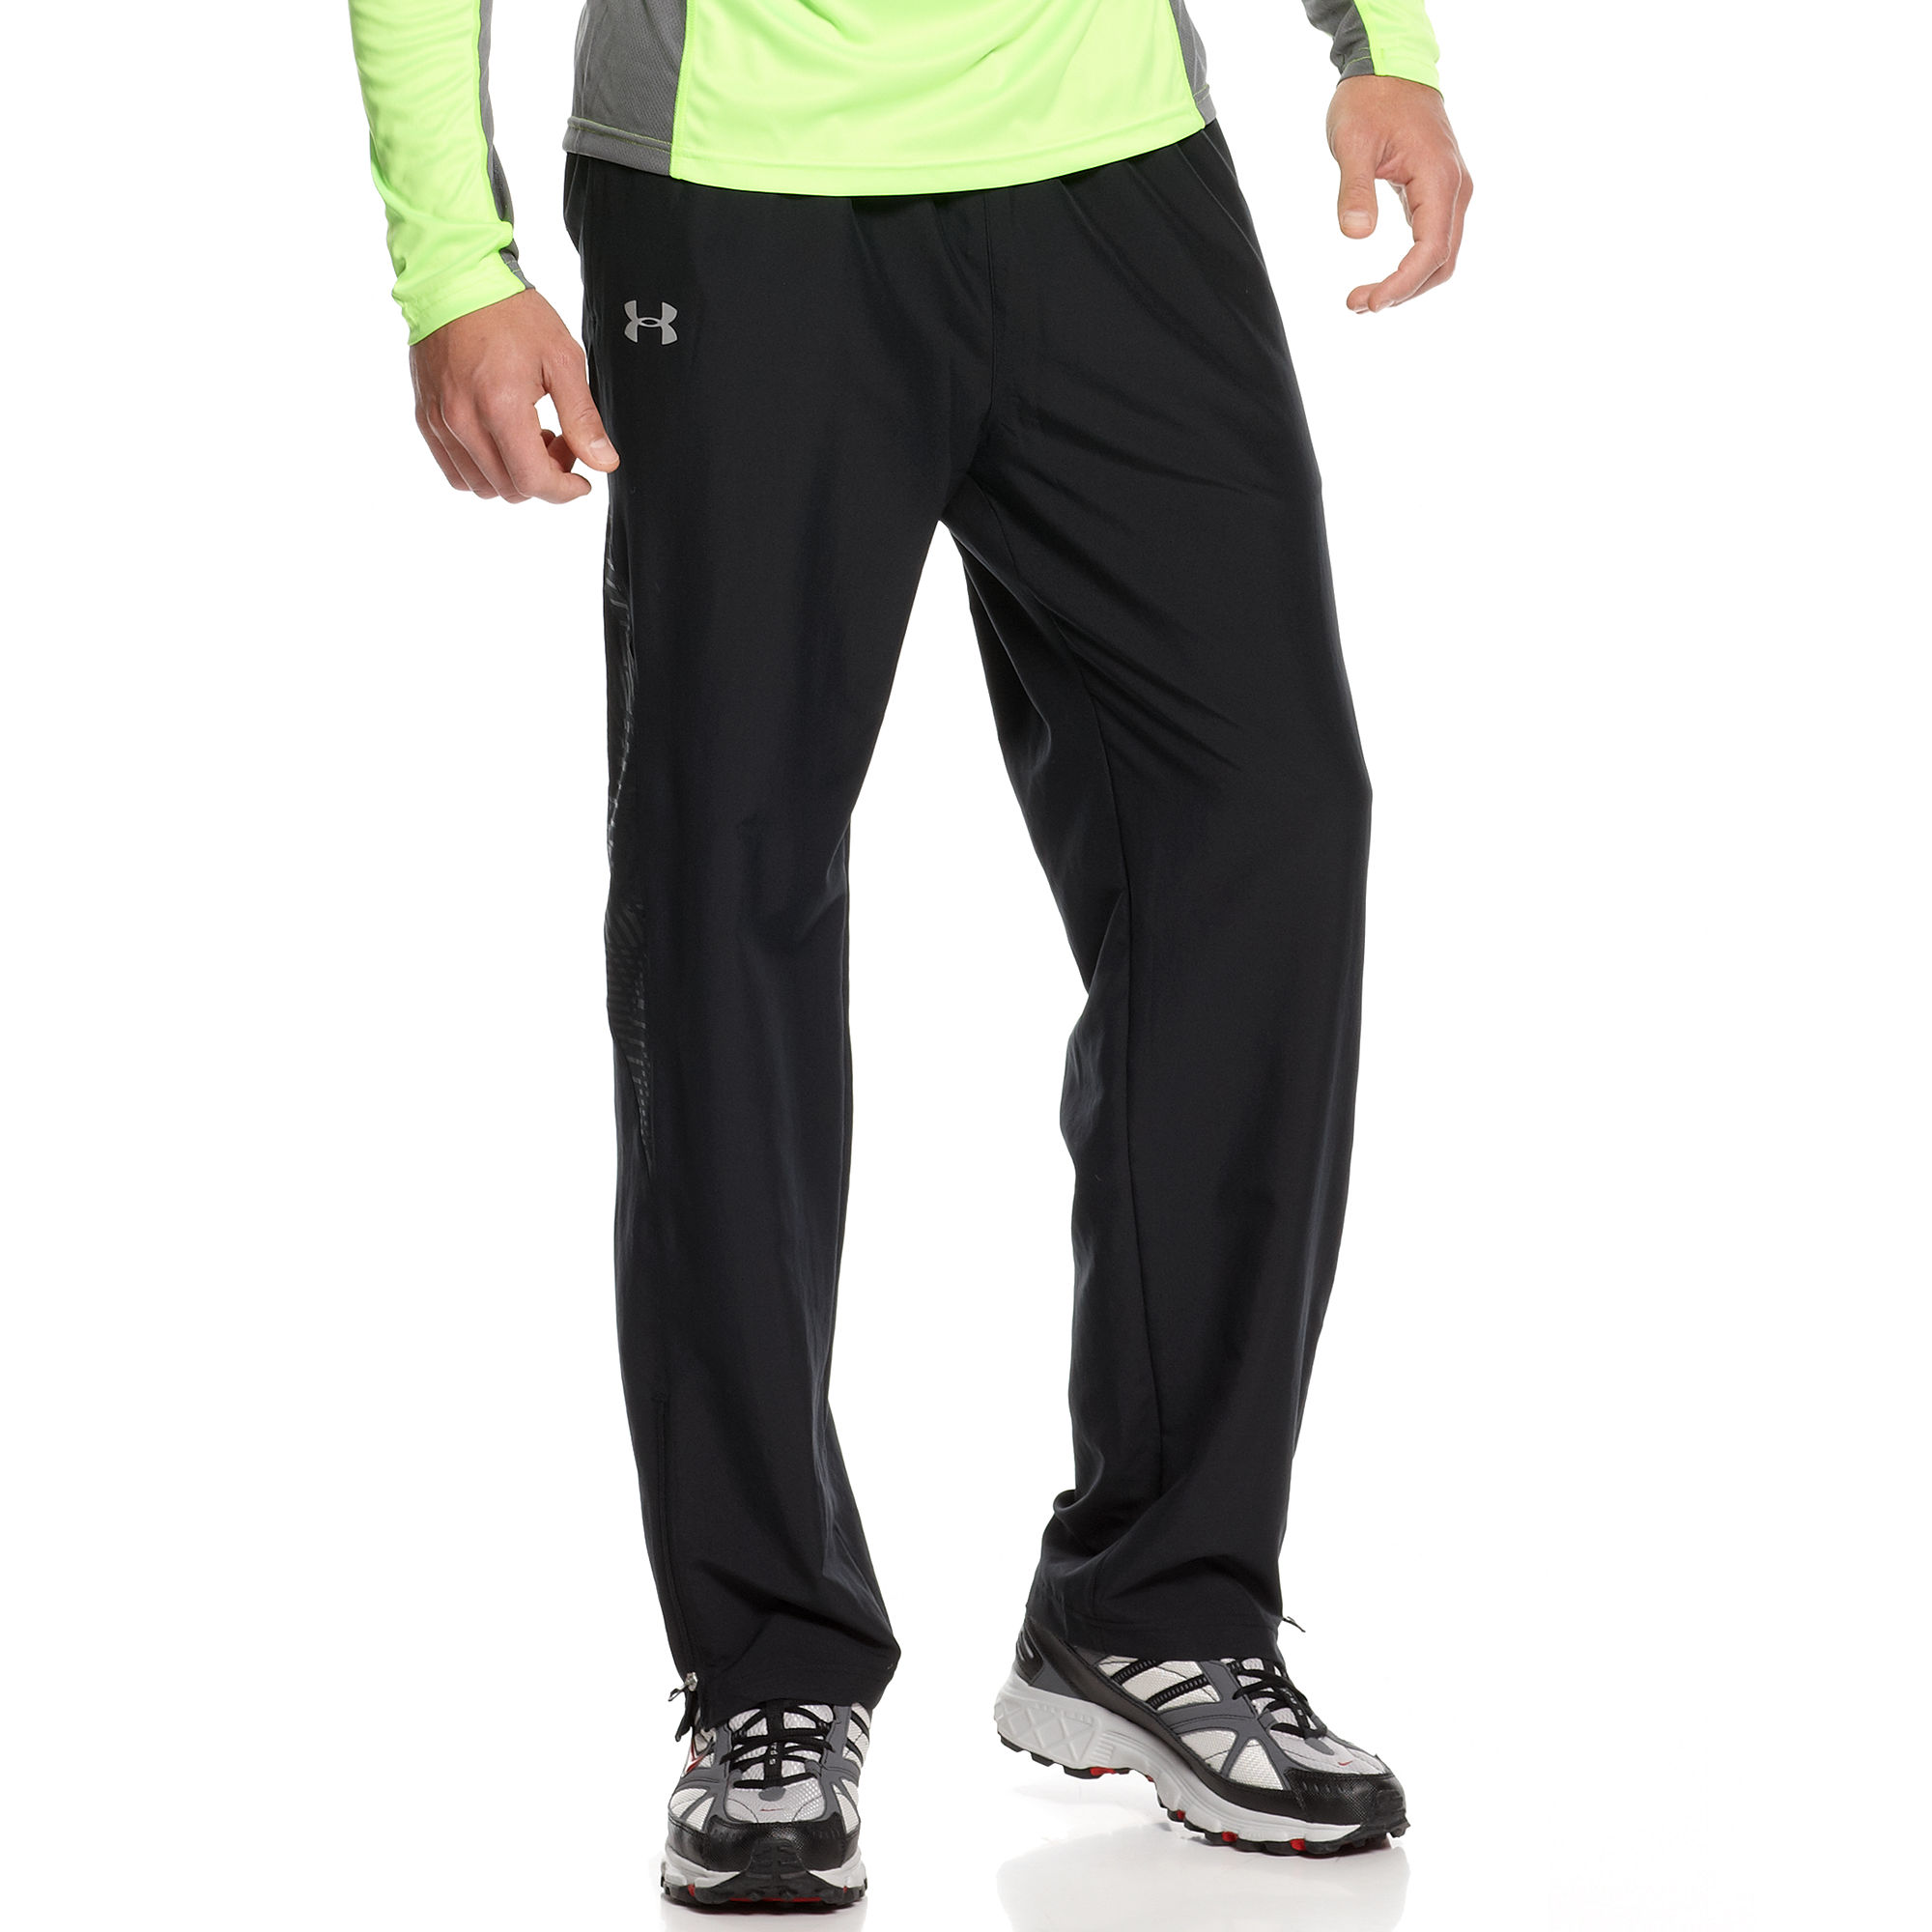 Searching for Nike Running Pants? Take a look at the top-rated pants of , Pros & Cons and what to be aware of before buying them in a store! Top performing running pants .